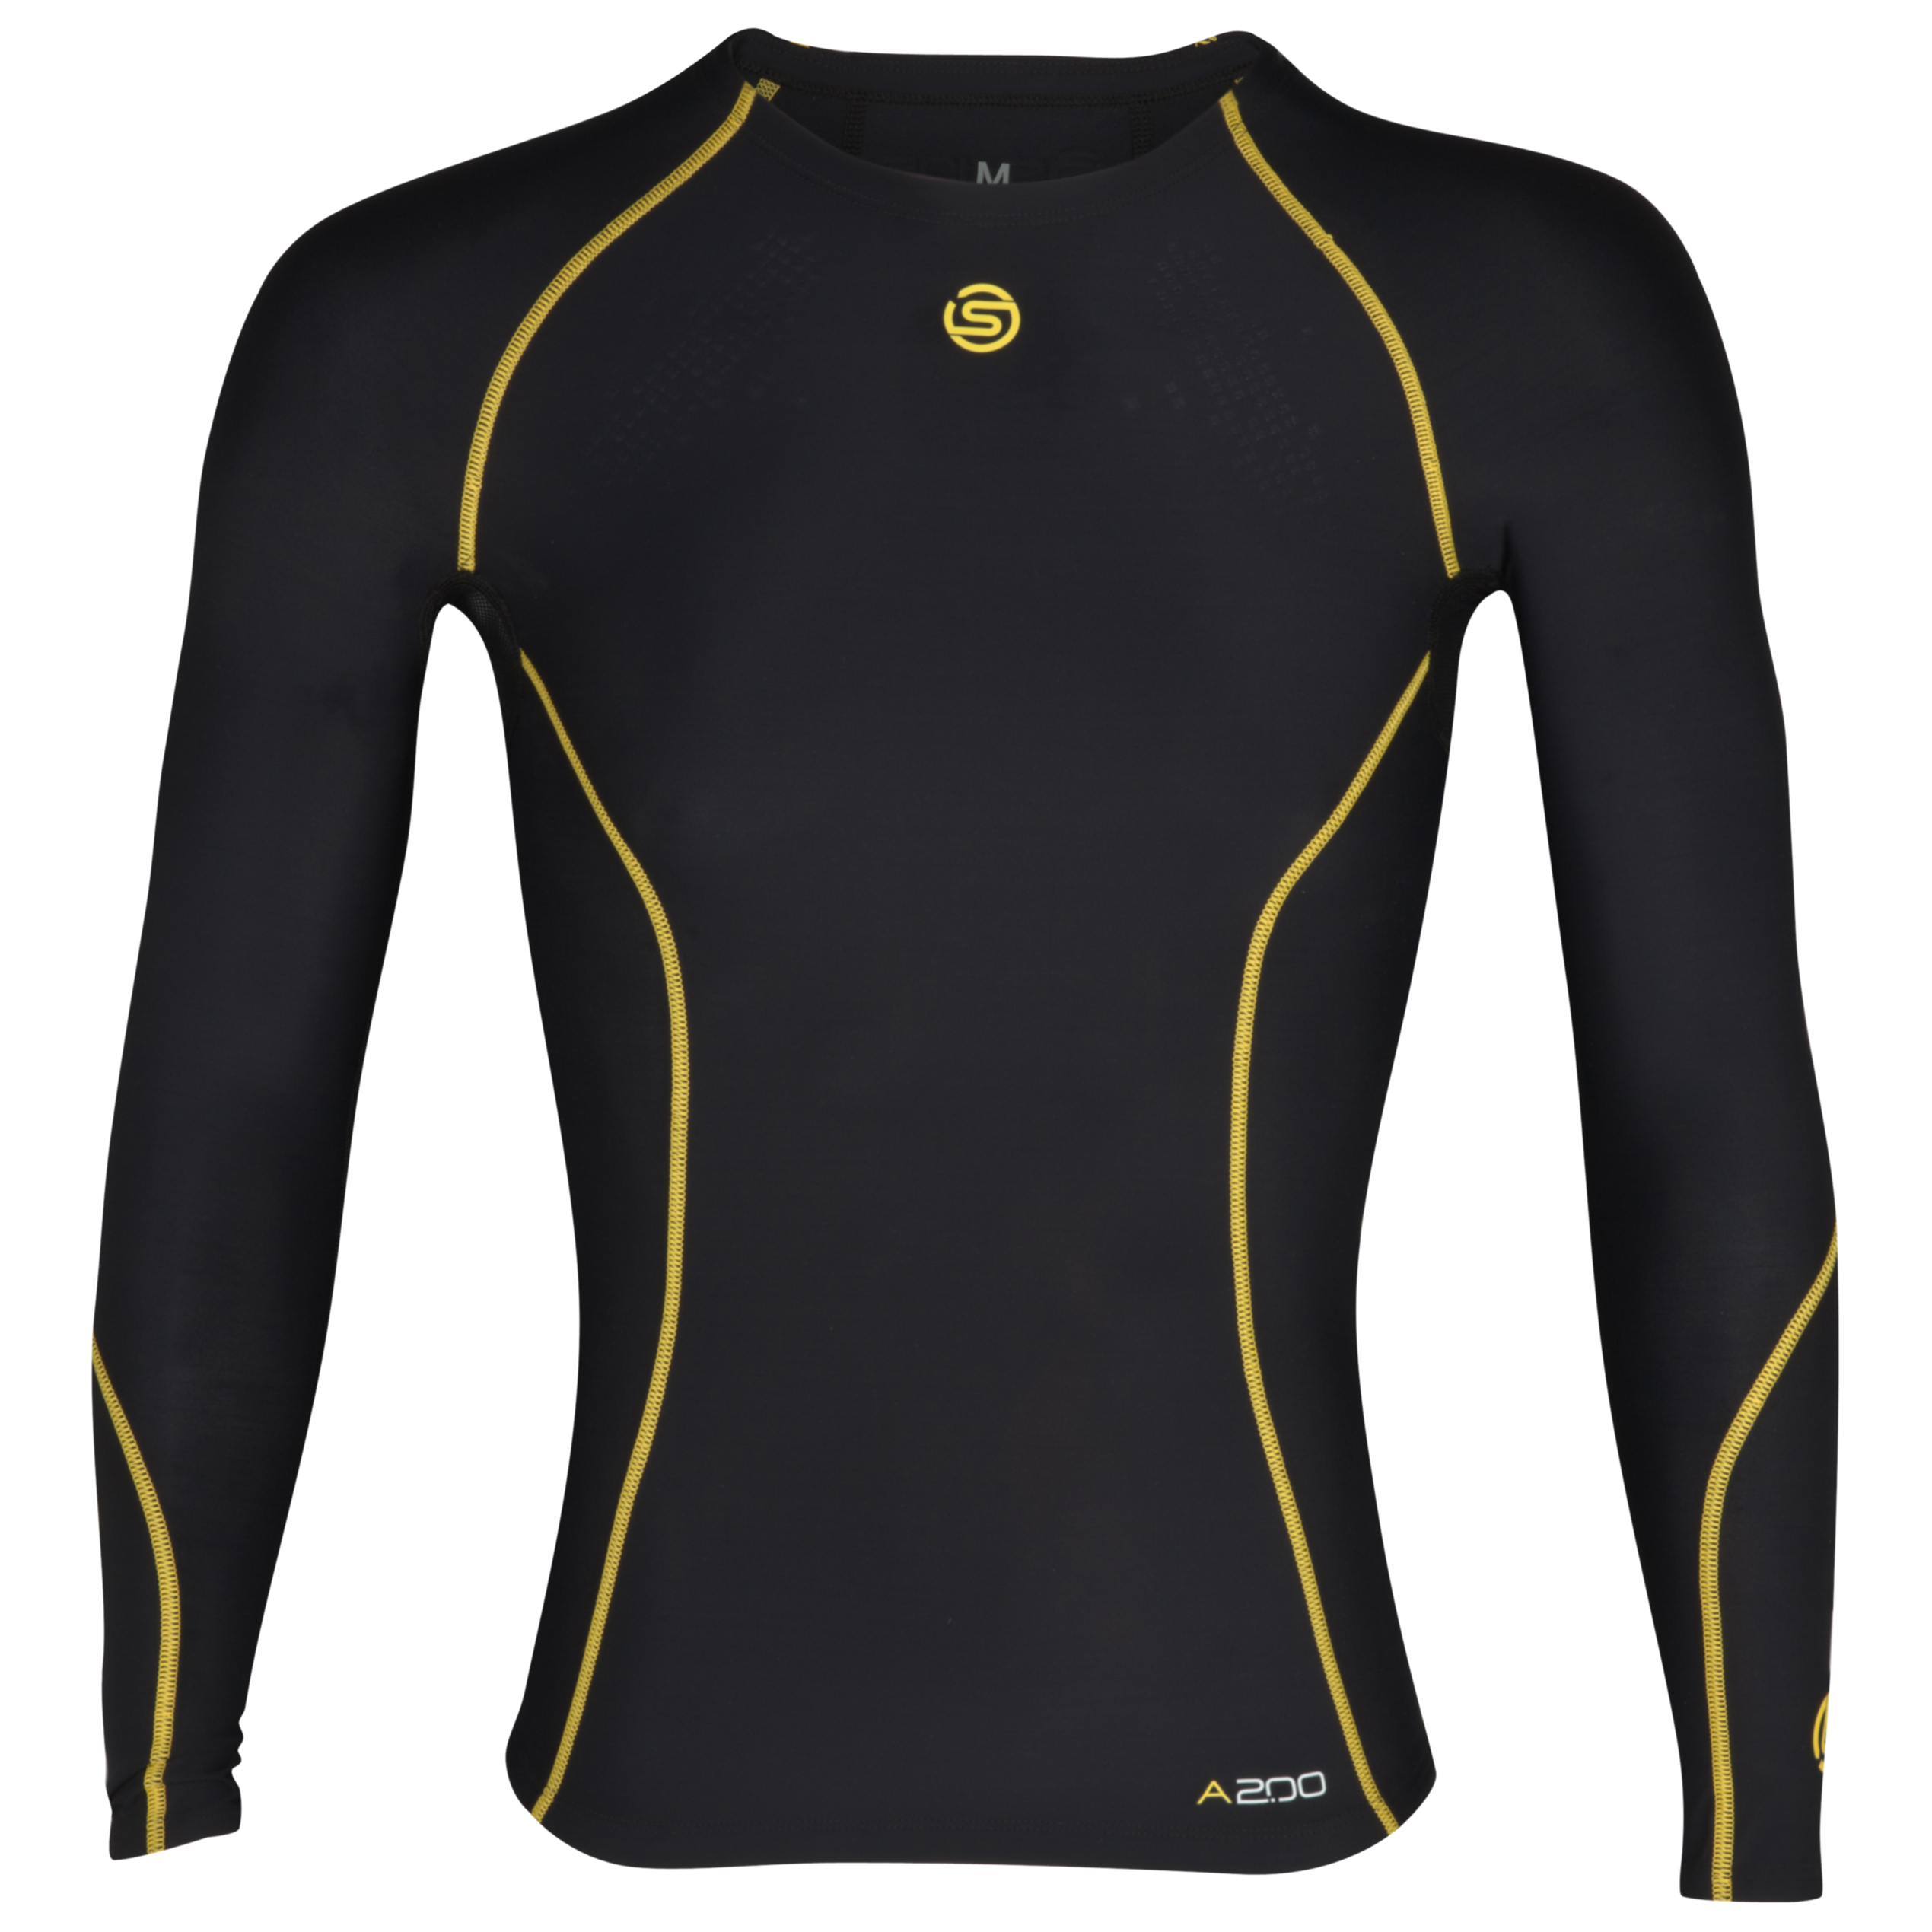 Skins A200 Long Sleeve Top - Black/Yellow - Kids